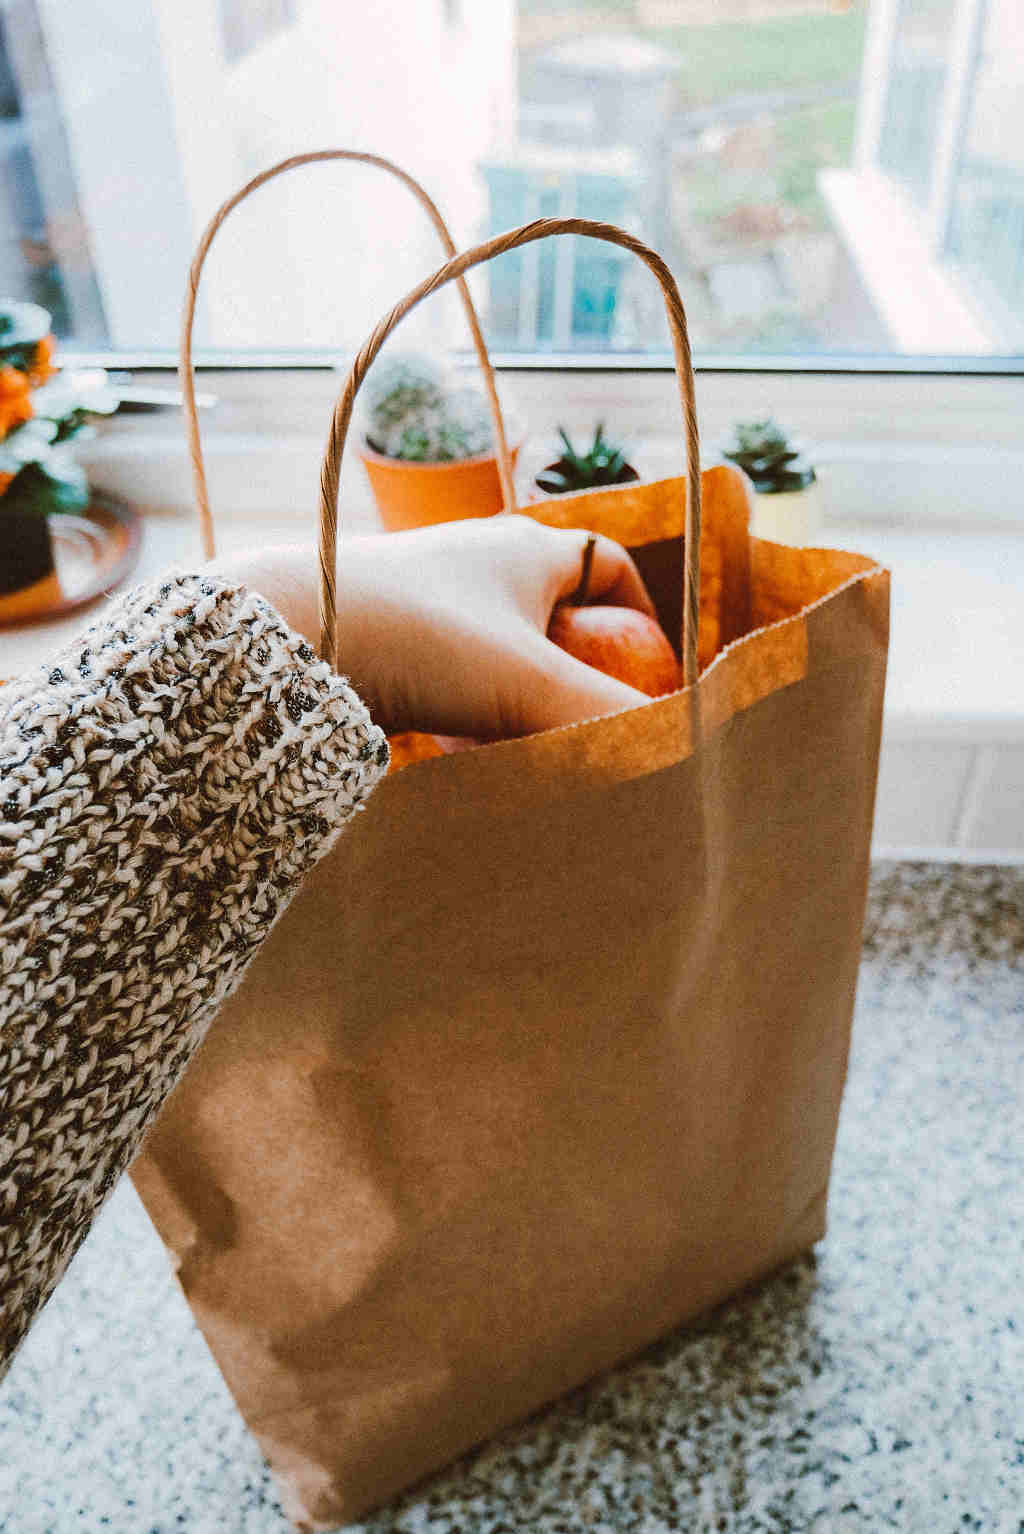 restaurant operators realized that launching groceraunts, or grocery stores from their restaurants, was a viable method of making money in the short term as consumers began shifting 23% of their spending to grocery